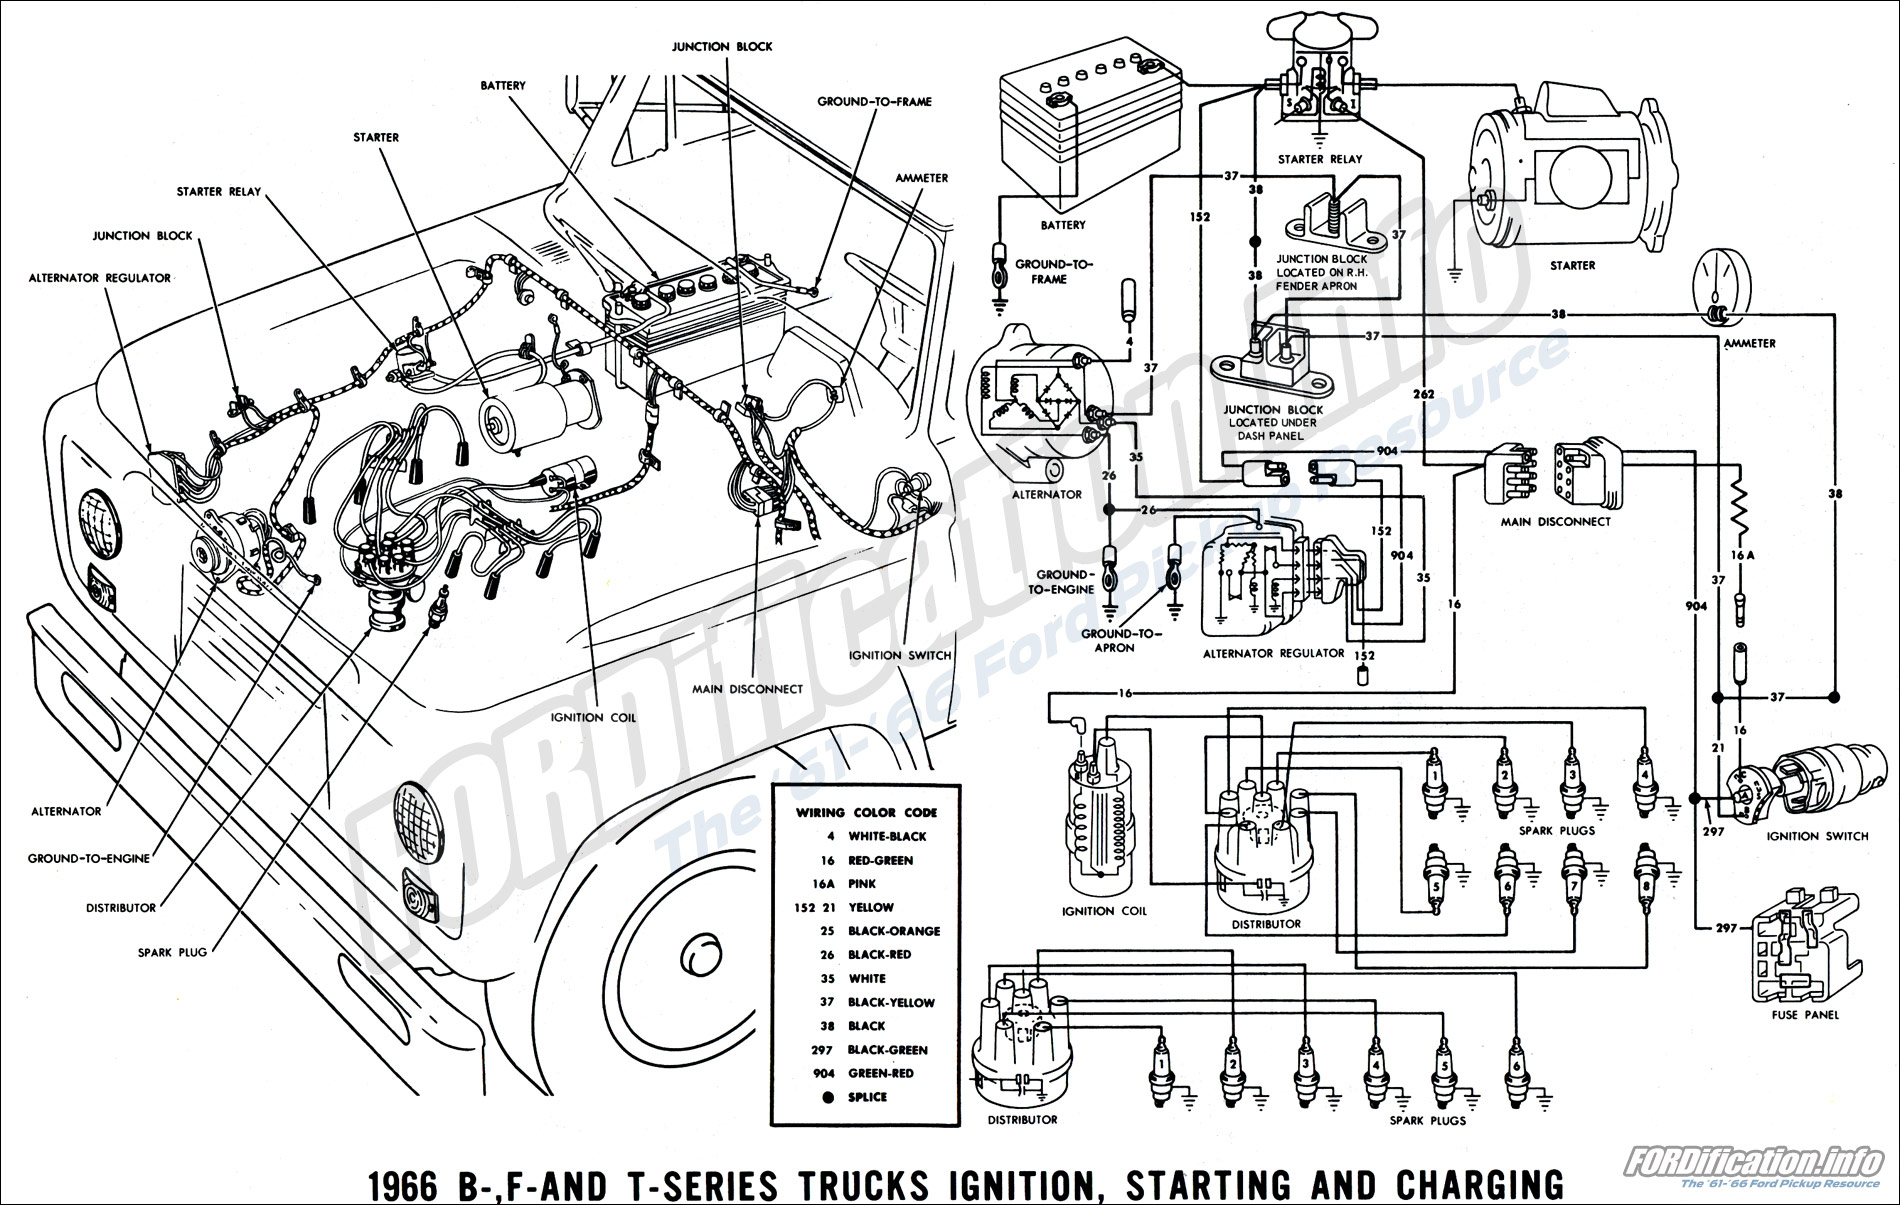 [SCHEMATICS_48IS]  130C 1959 Ford Ignition Wiring Diagram | Wiring Library | 1966 Ford Alternator Diagram Wiring Schematic |  | Wiring Library